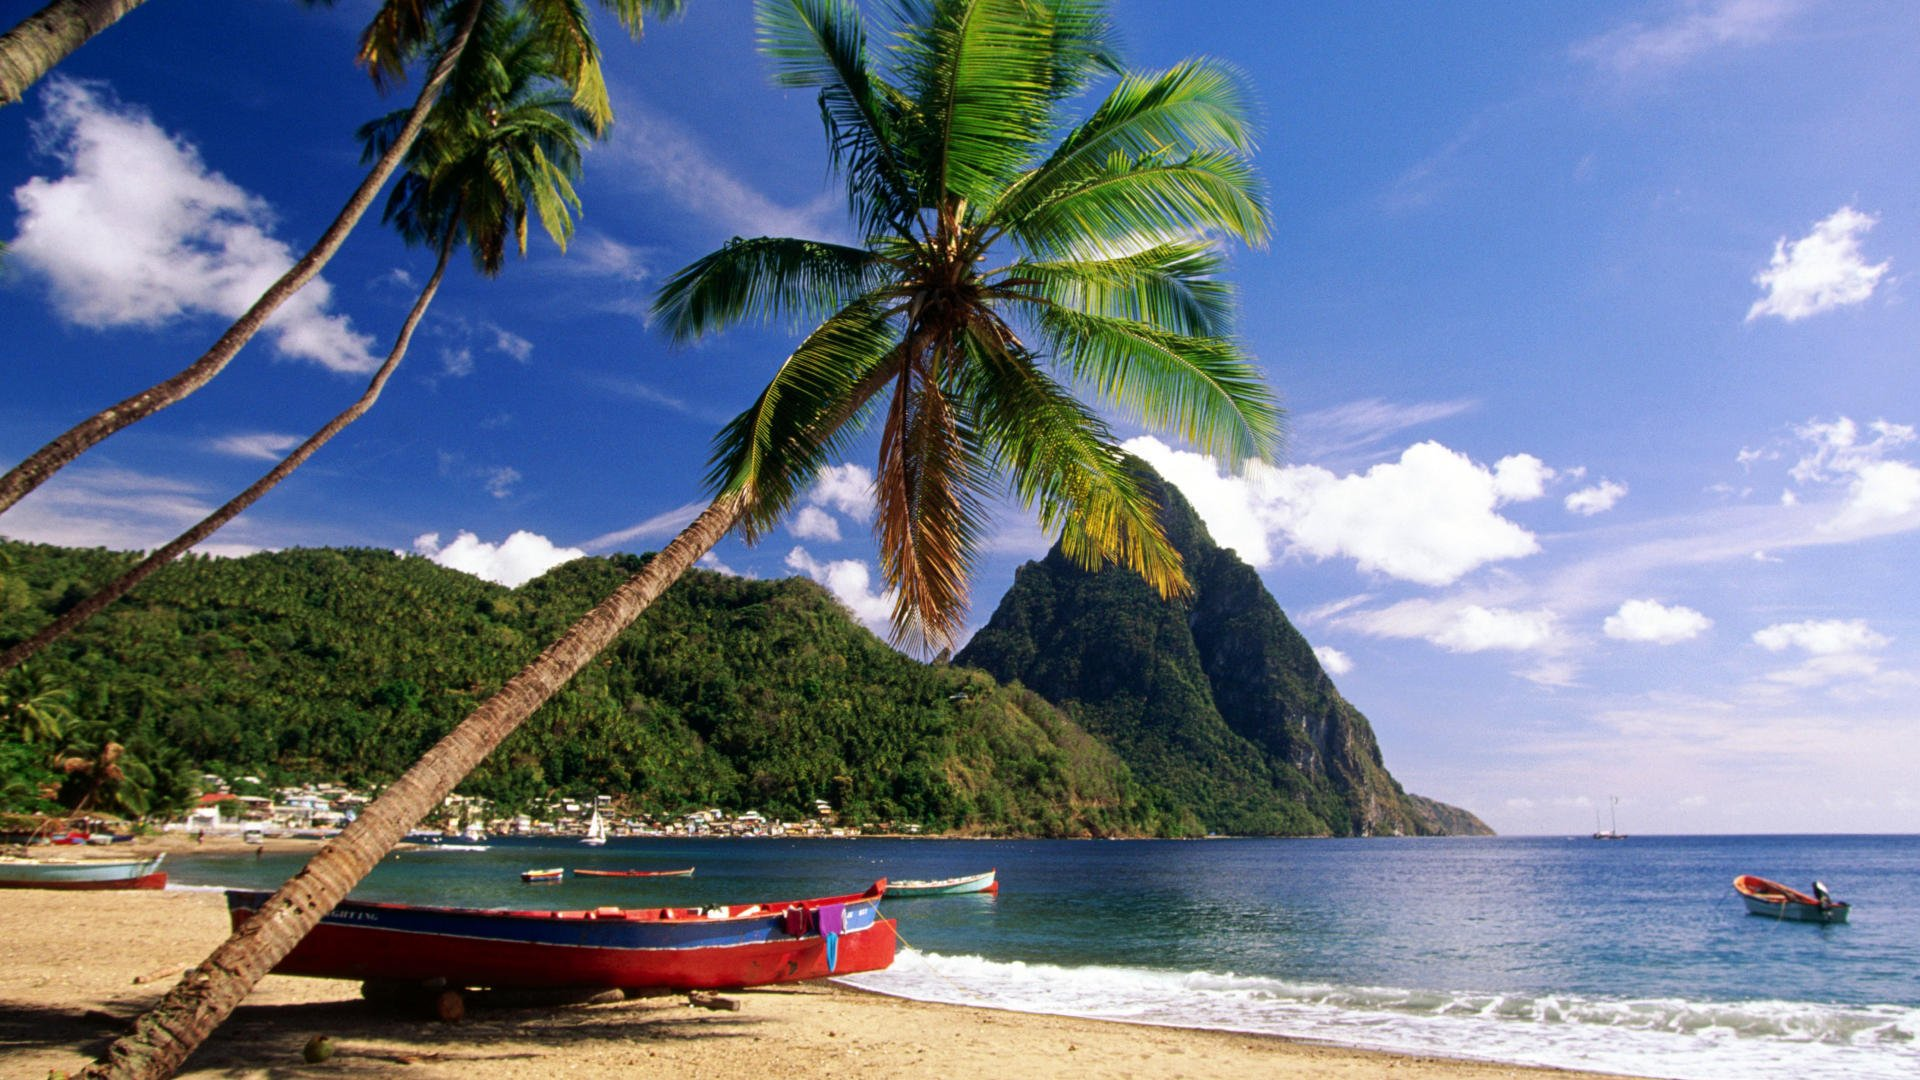 Beach Desktop Backgrounds and Wallpaper   Caribbean Escape St Lucia 1920x1080